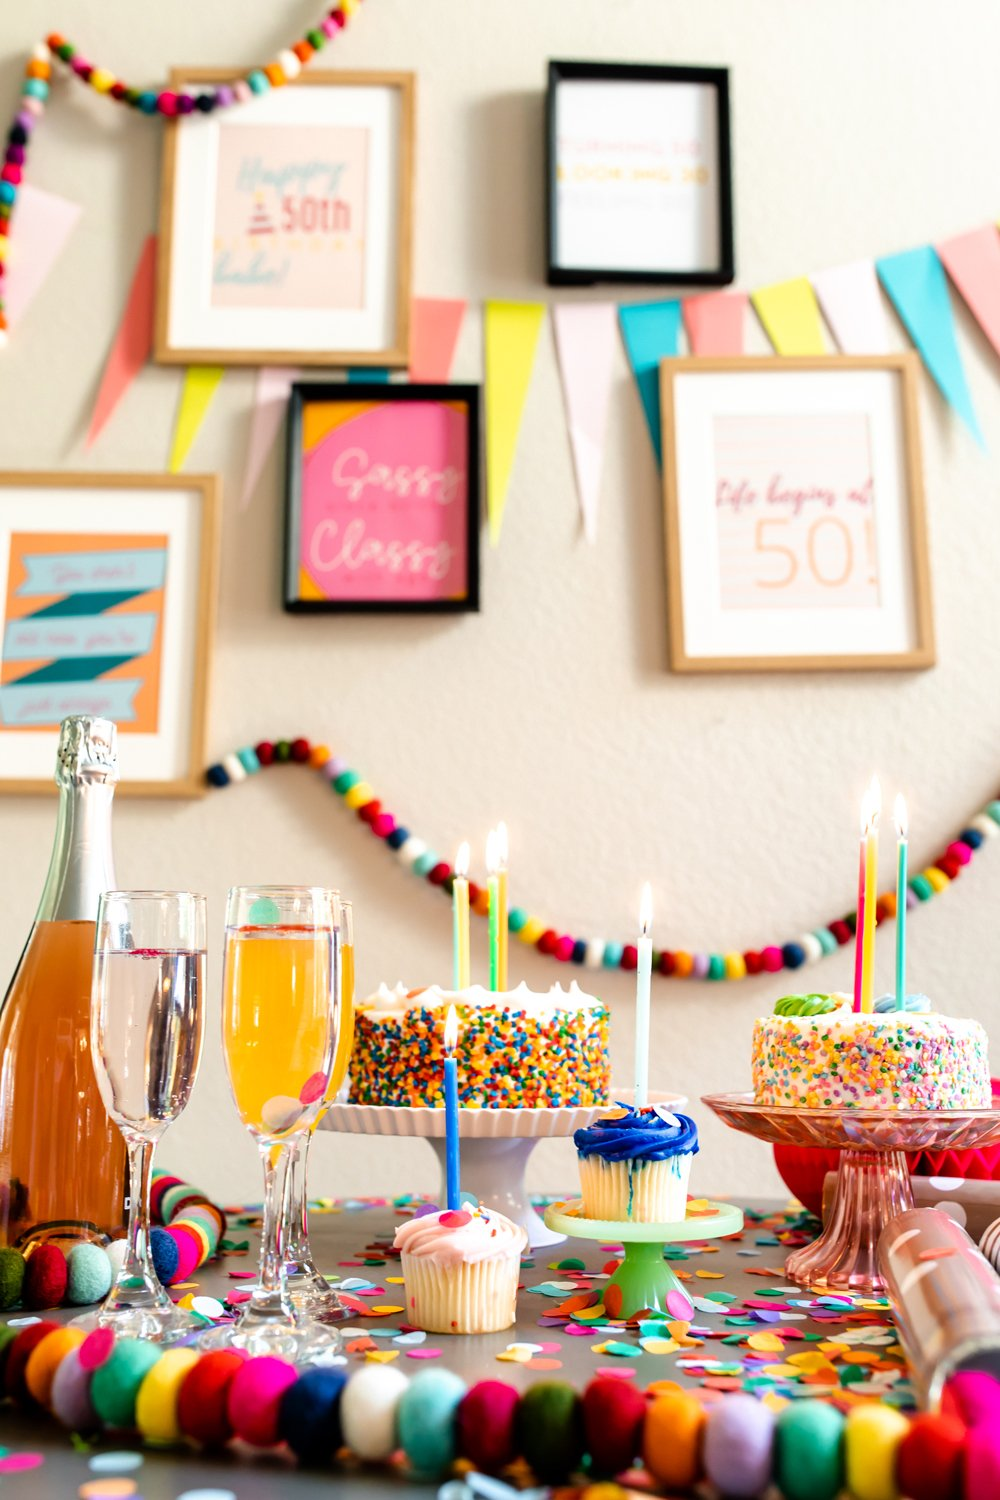 50th party ideas and decorations for turning 50 party